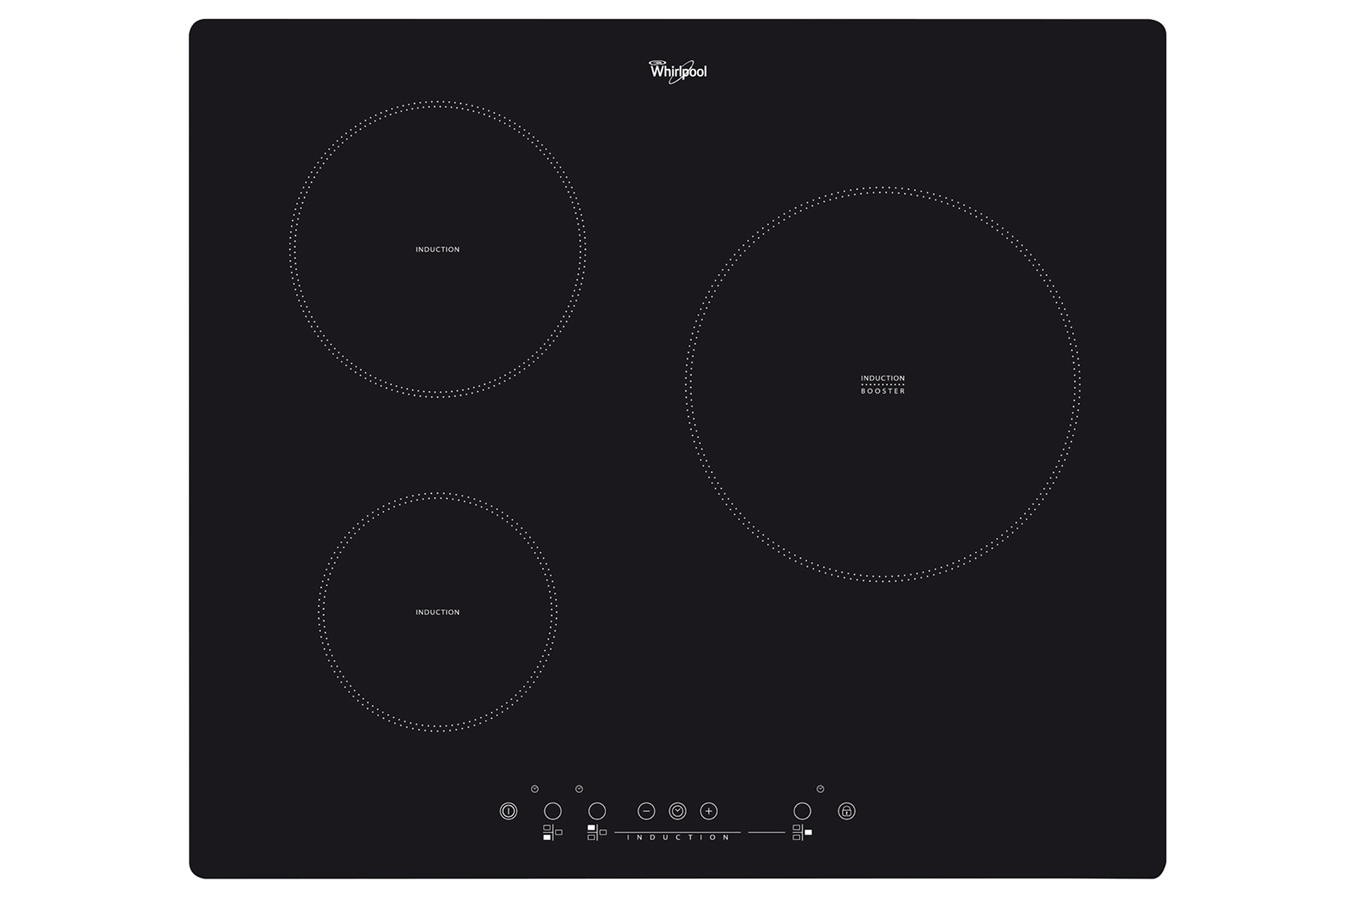 probleme plaque induction whirlpool les derni res id es de design et. Black Bedroom Furniture Sets. Home Design Ideas